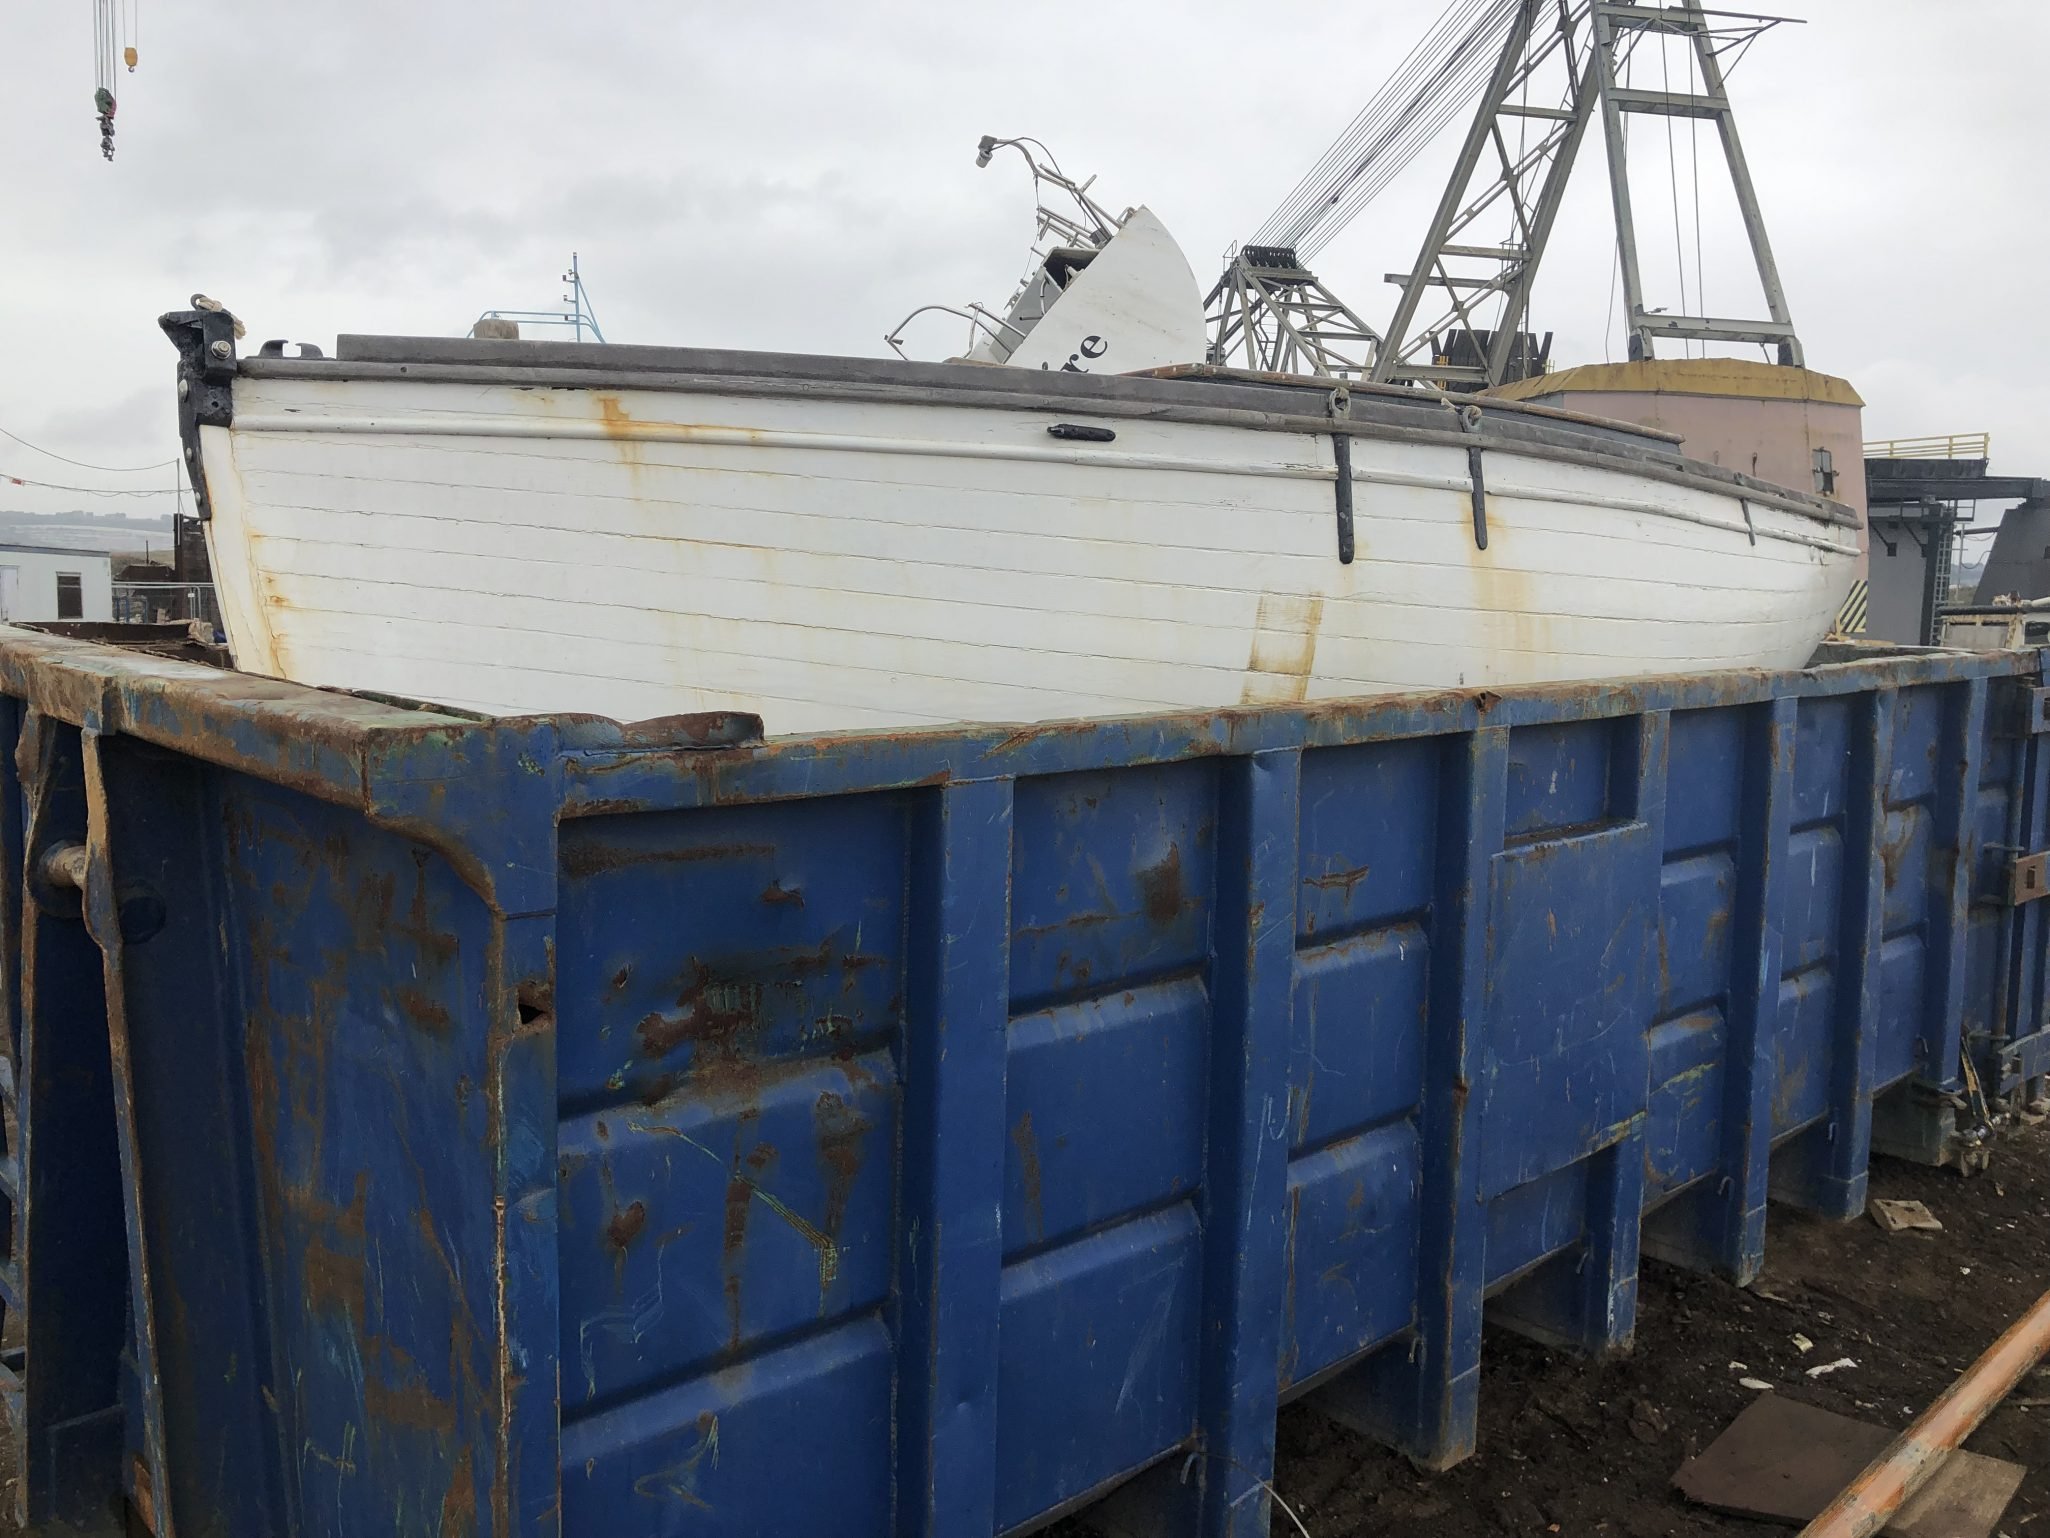 Looking to the Future of Boat Disposal